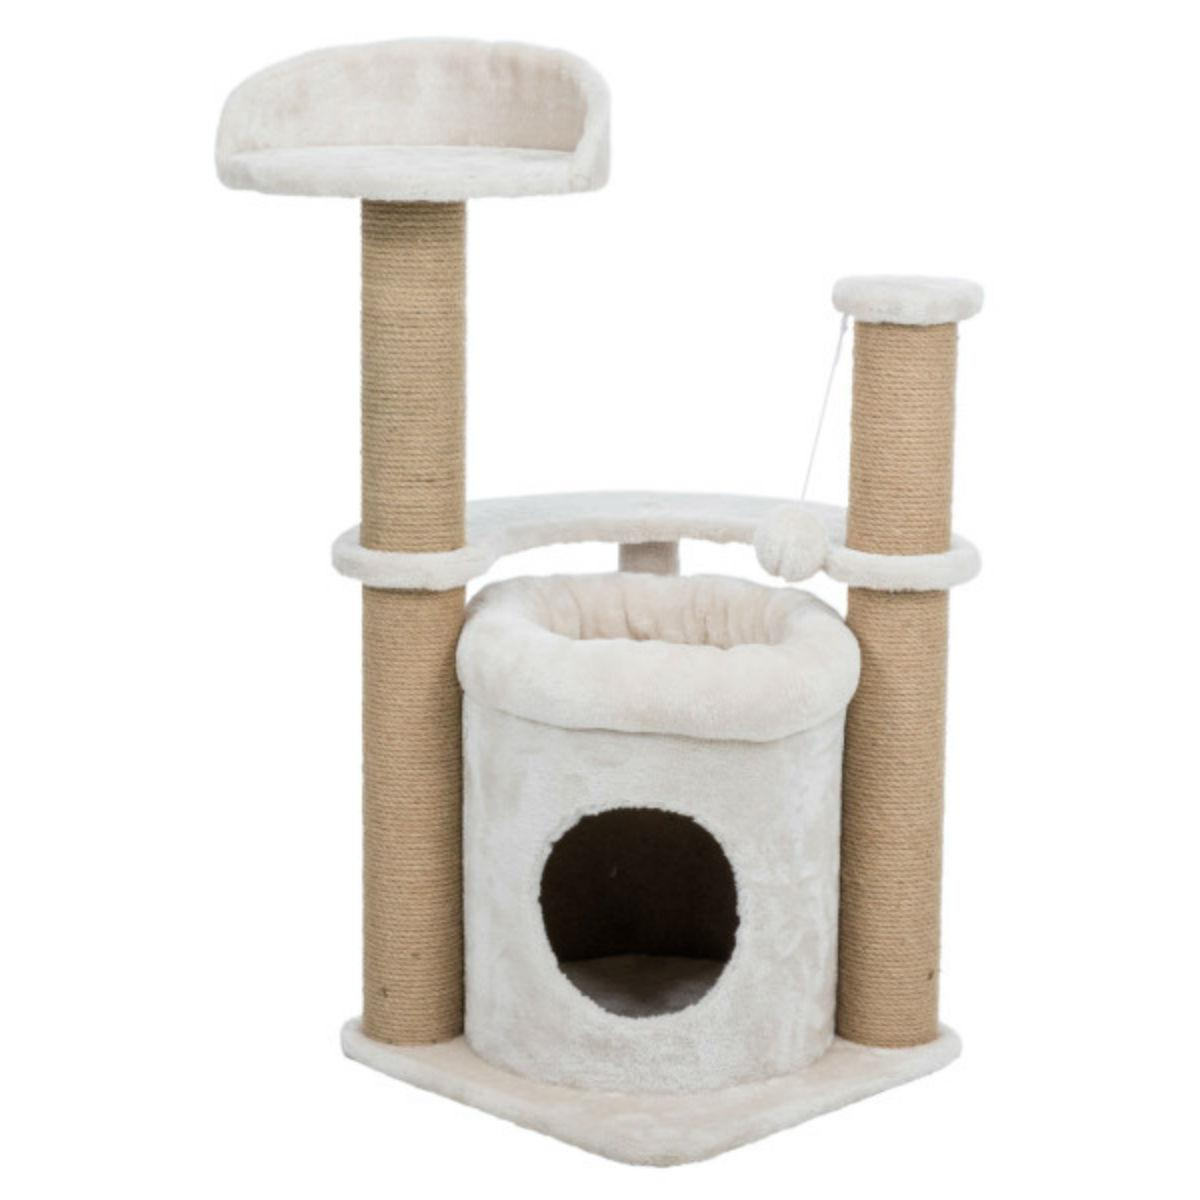 Trixie Nayra Scratching Post Cat Condo - Beige